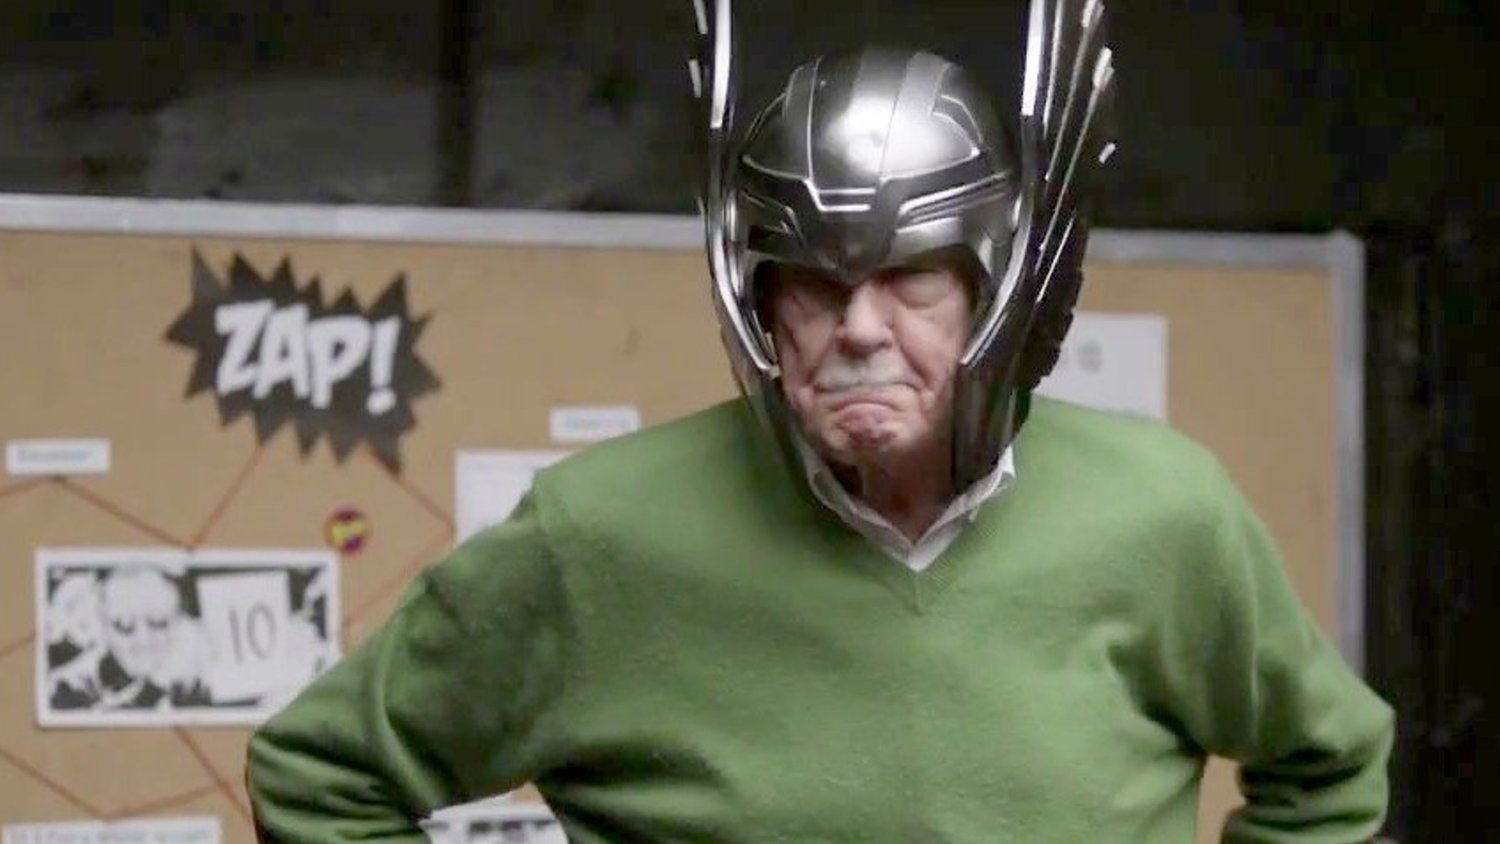 Todd McFarlane Reveals What Stan Lee's Cameo Would Be in His SPAWN Movie